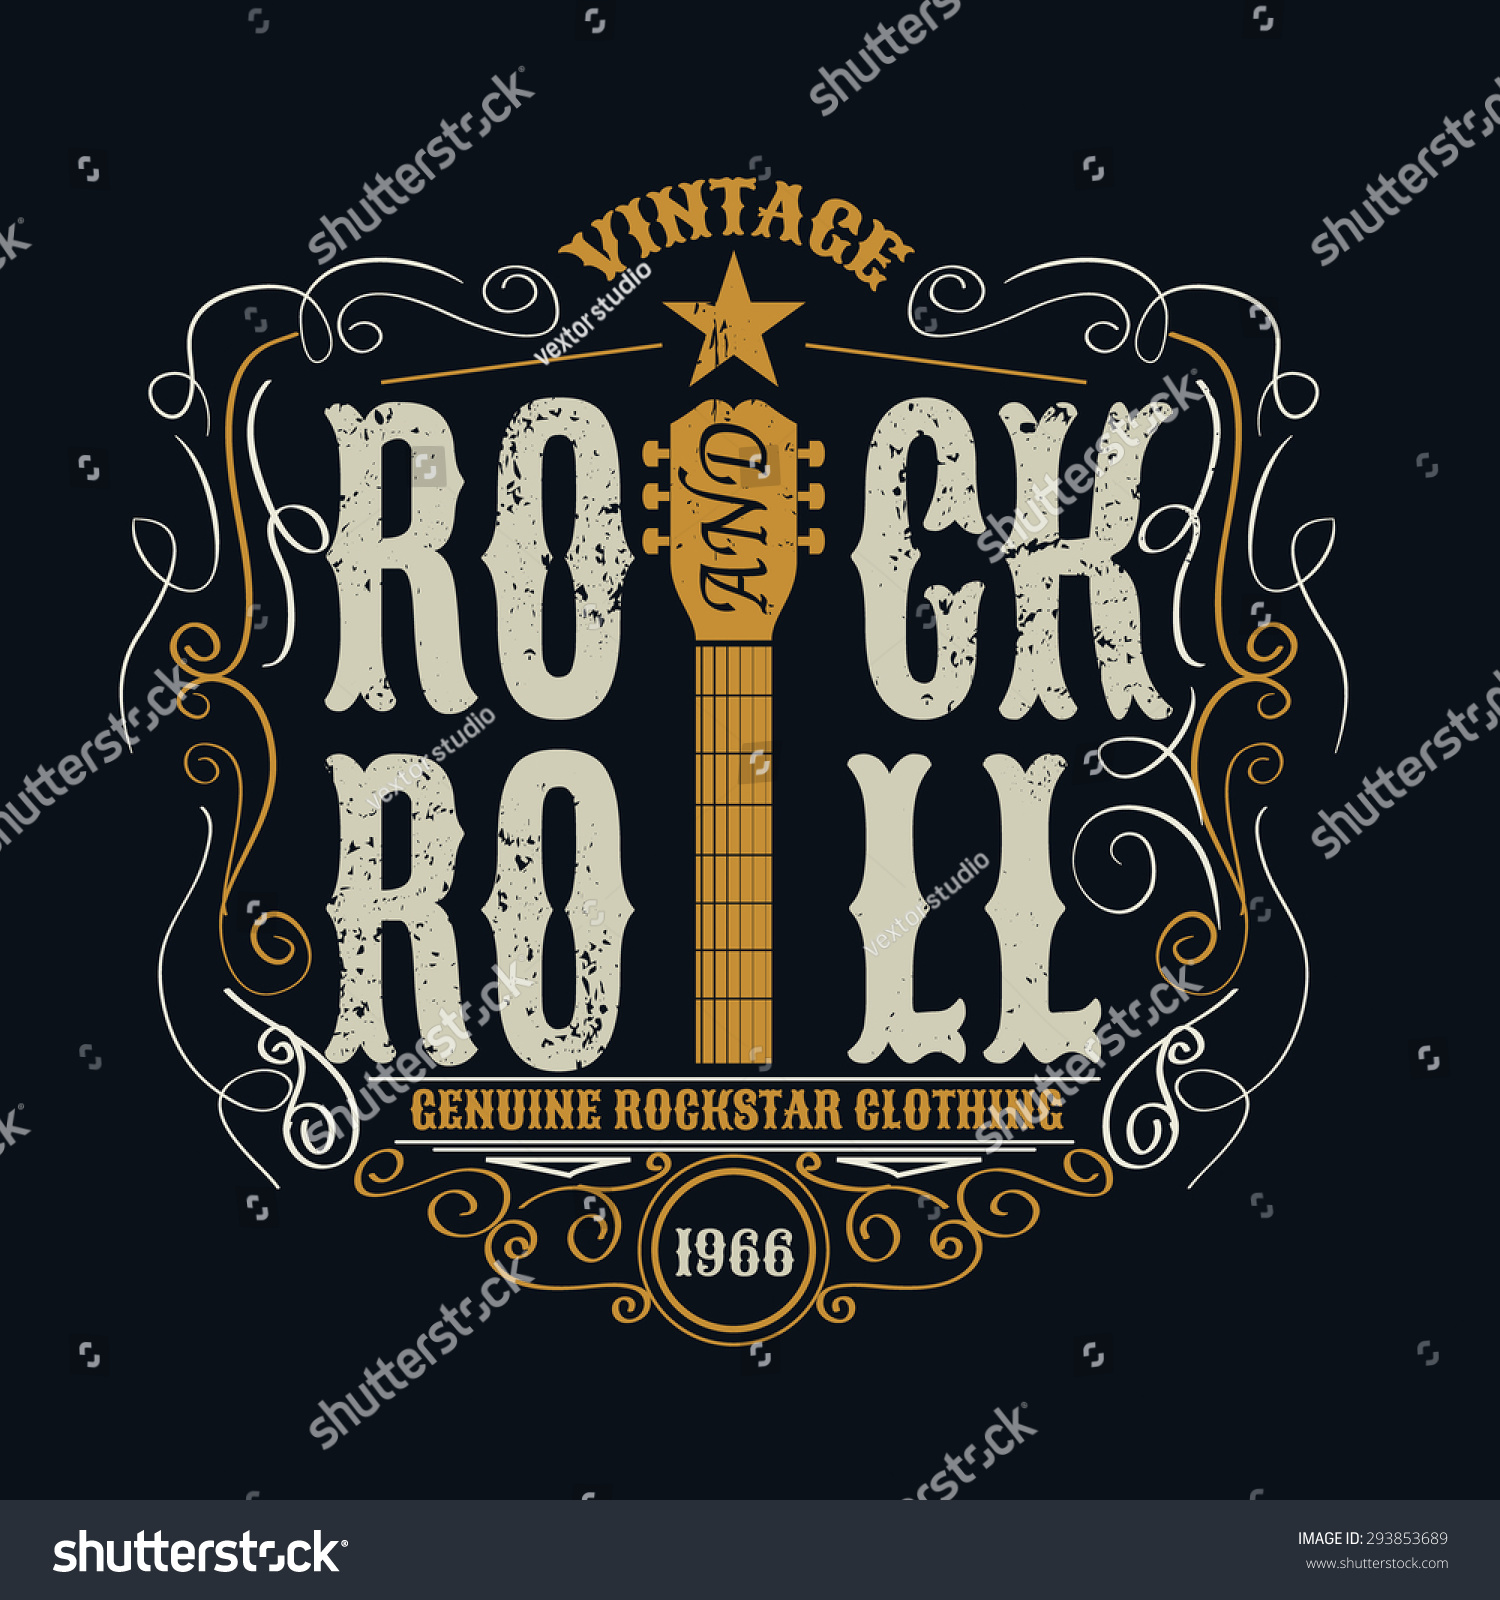 Vintage Rock N Roll Shirts 27